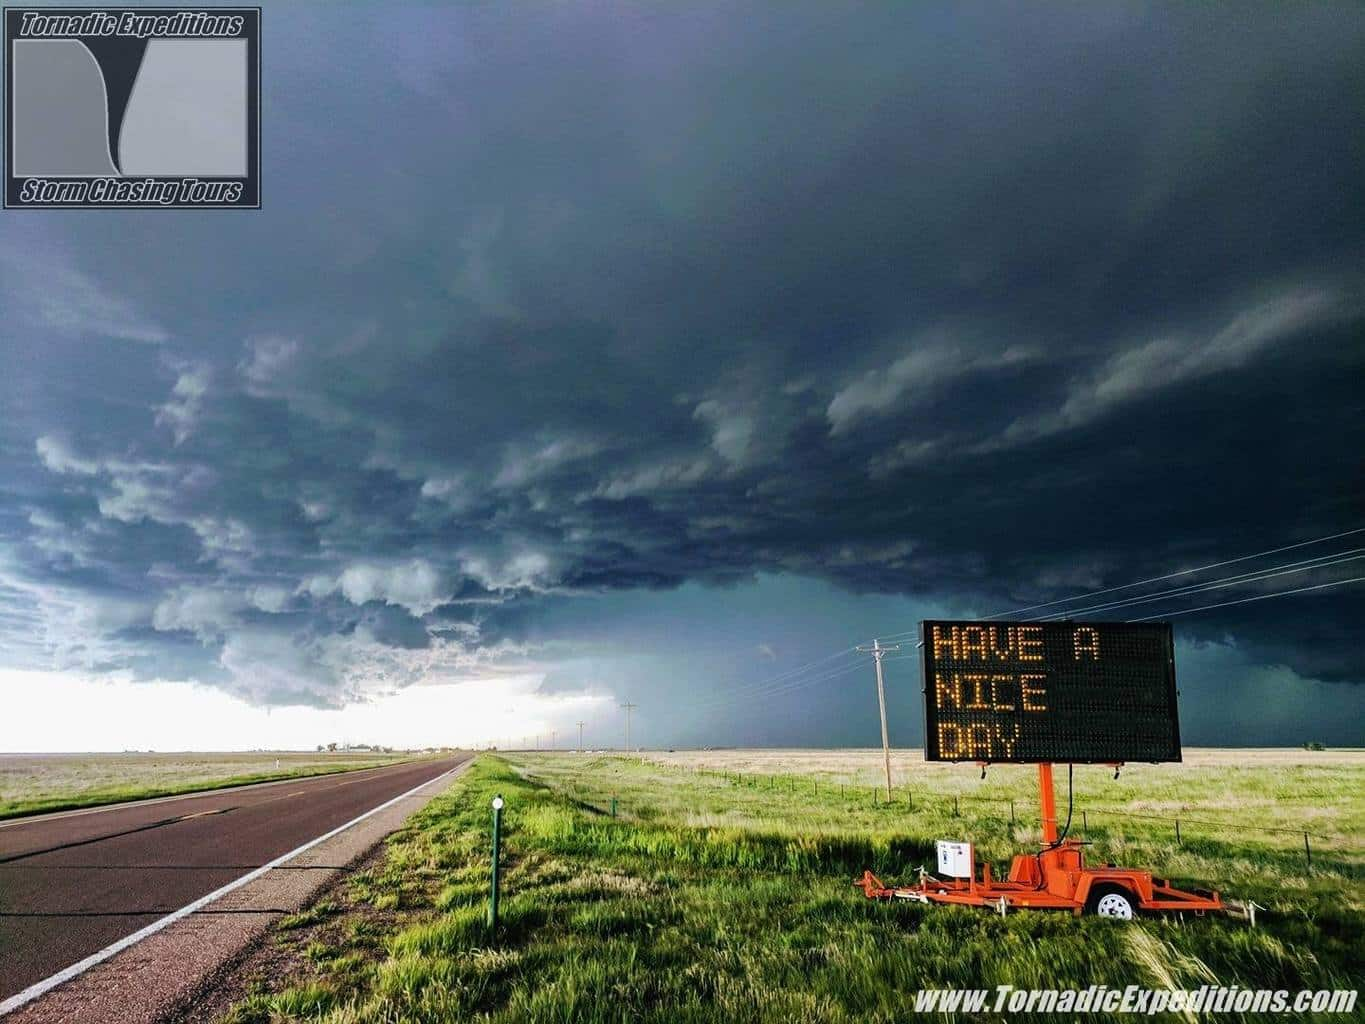 """Tour- 4 chased two days in a row in Colorado. On the first day we drove by this sign and we all laughed how cool it would be to get a storm behind it. Well on the second chase day it happened! Near Joes, Colorado 05/26/17. """"Have A Nice Day"""""""